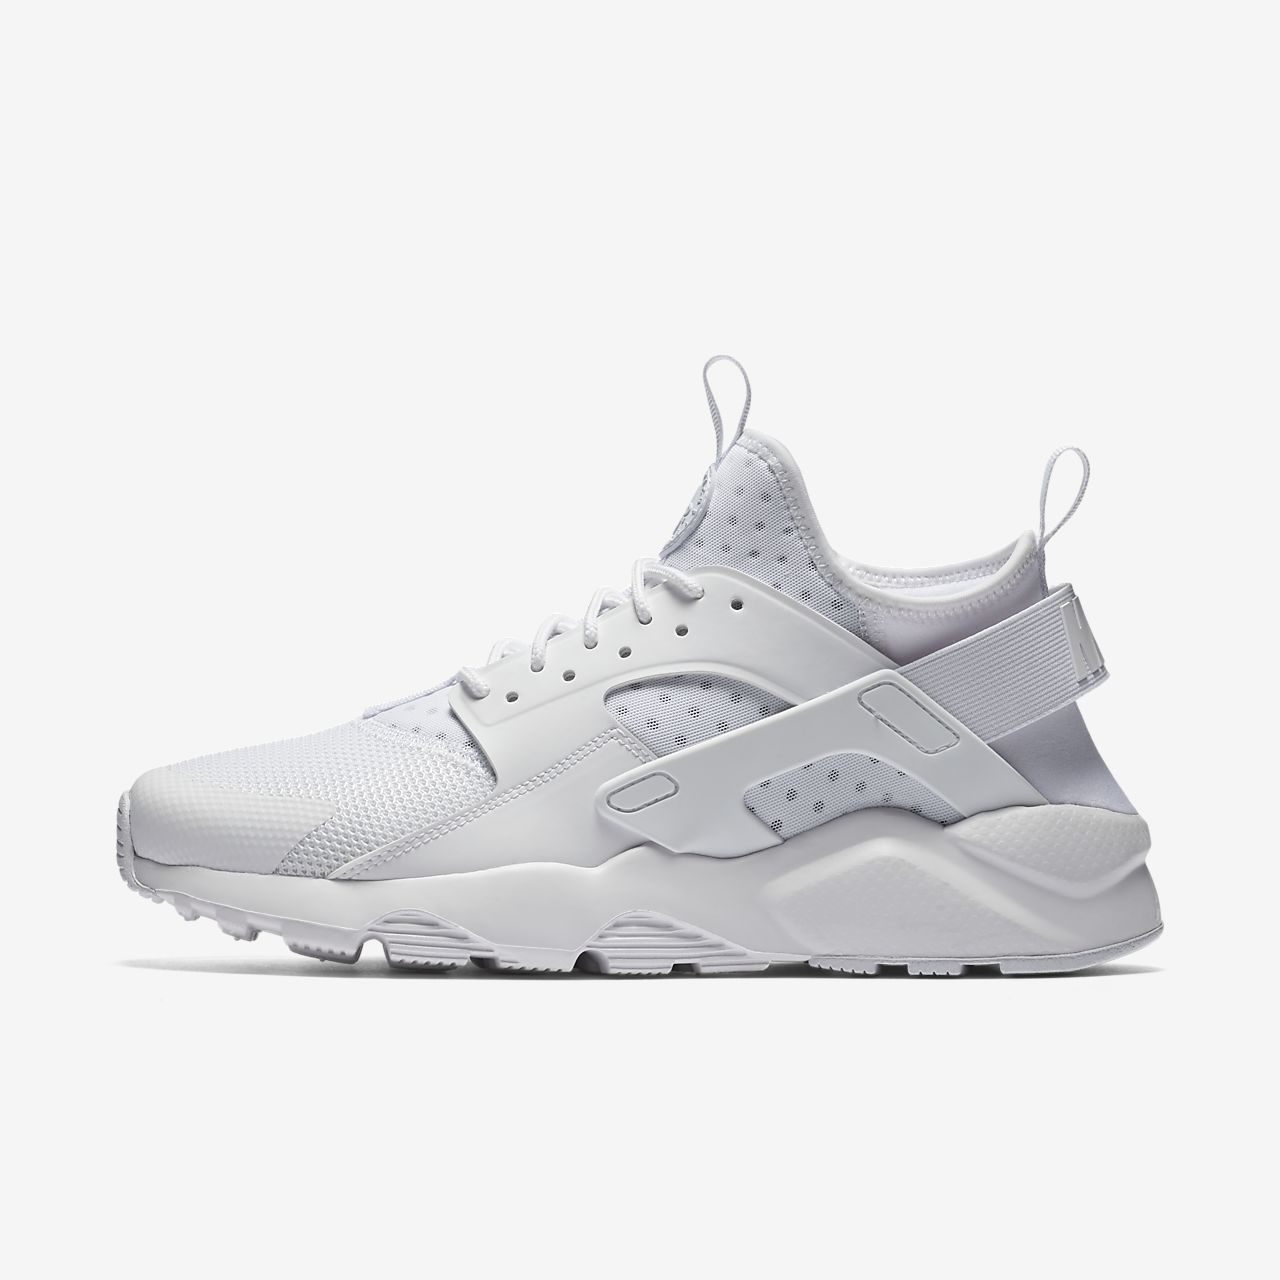 men's nike air huarache ultra running shoes nz